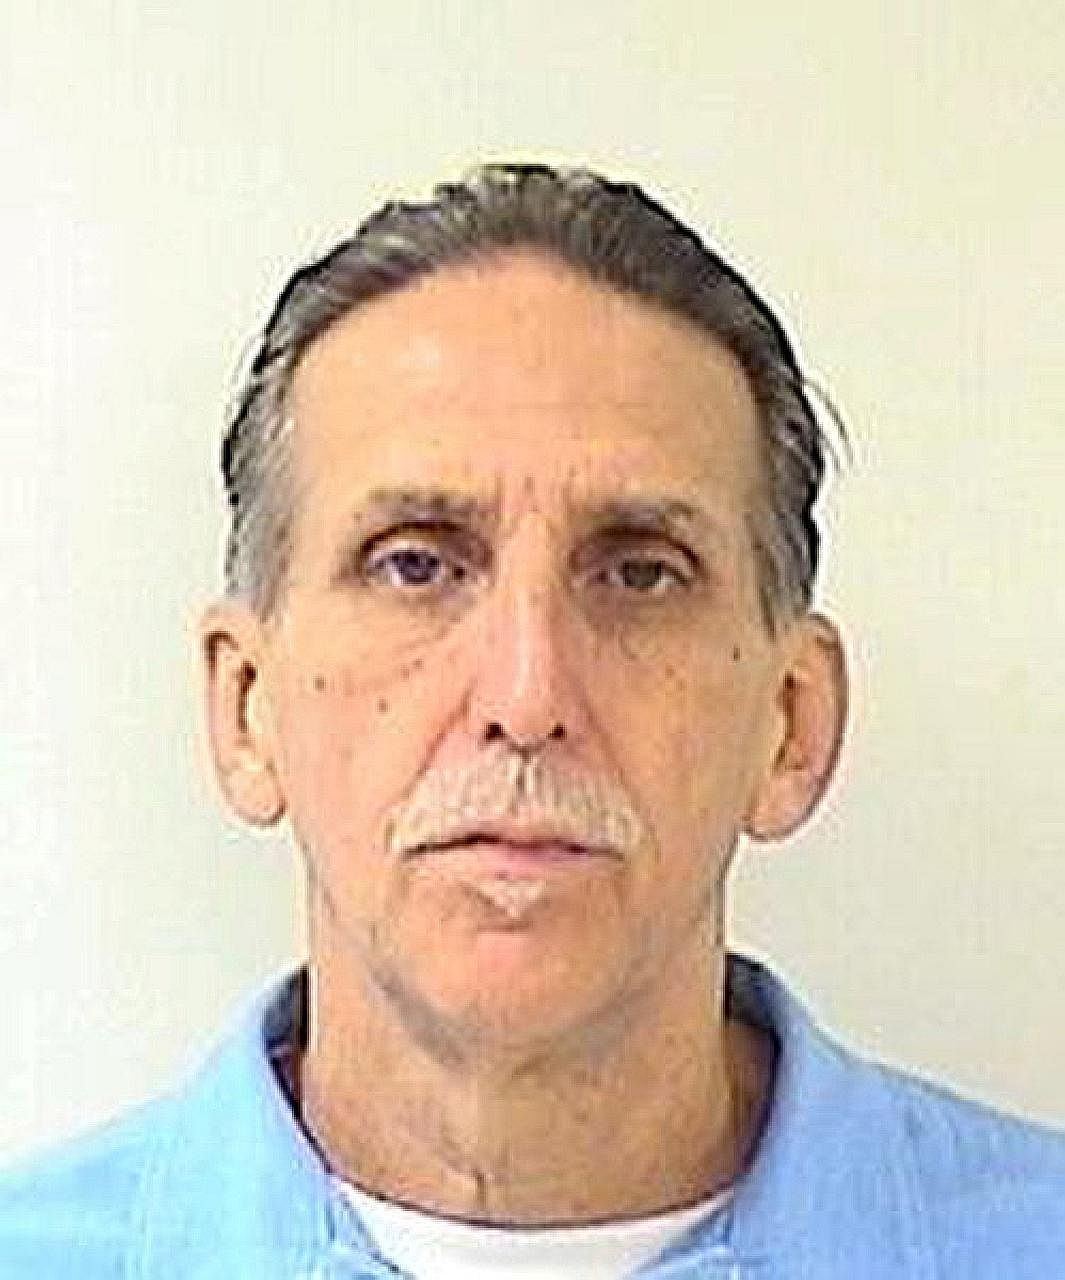 Mr Craig Coley, 71, was released from prison in 2017 after being wrongly convicted for the murders of a woman and her four-year-old son in 1978.